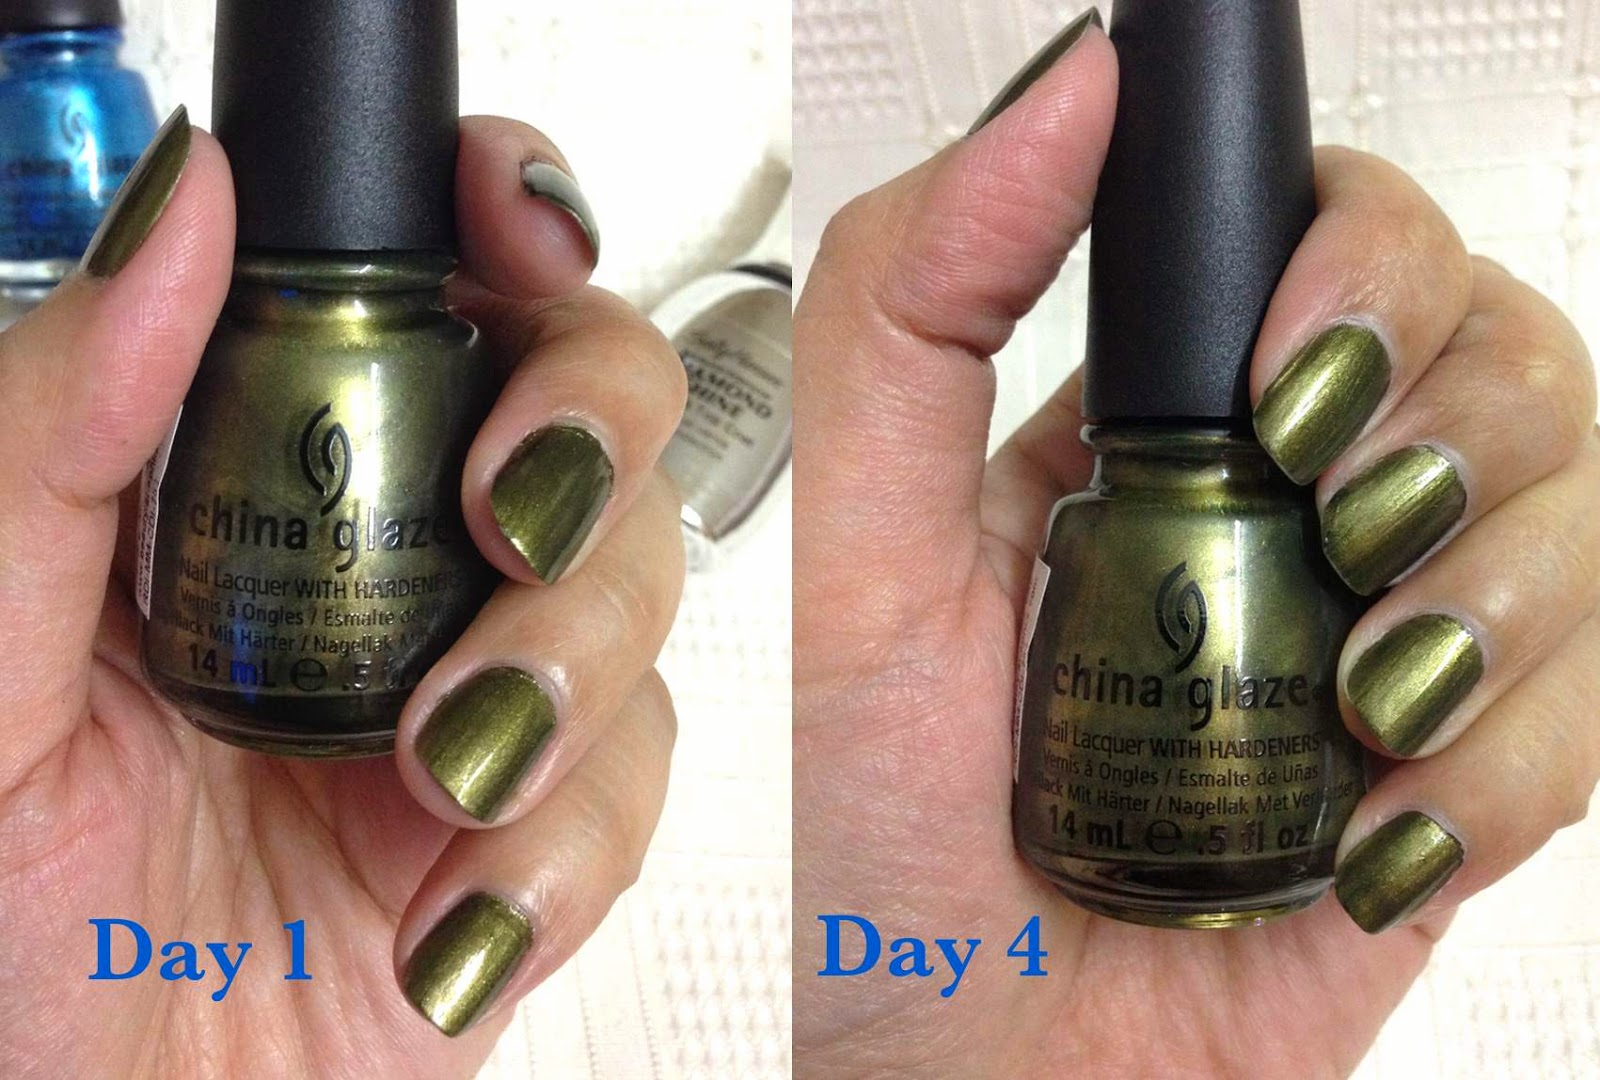 Celestechoo china glaze nail polish in lovely green color chinaglazelongwearnailpolishafter4days nvjuhfo Gallery